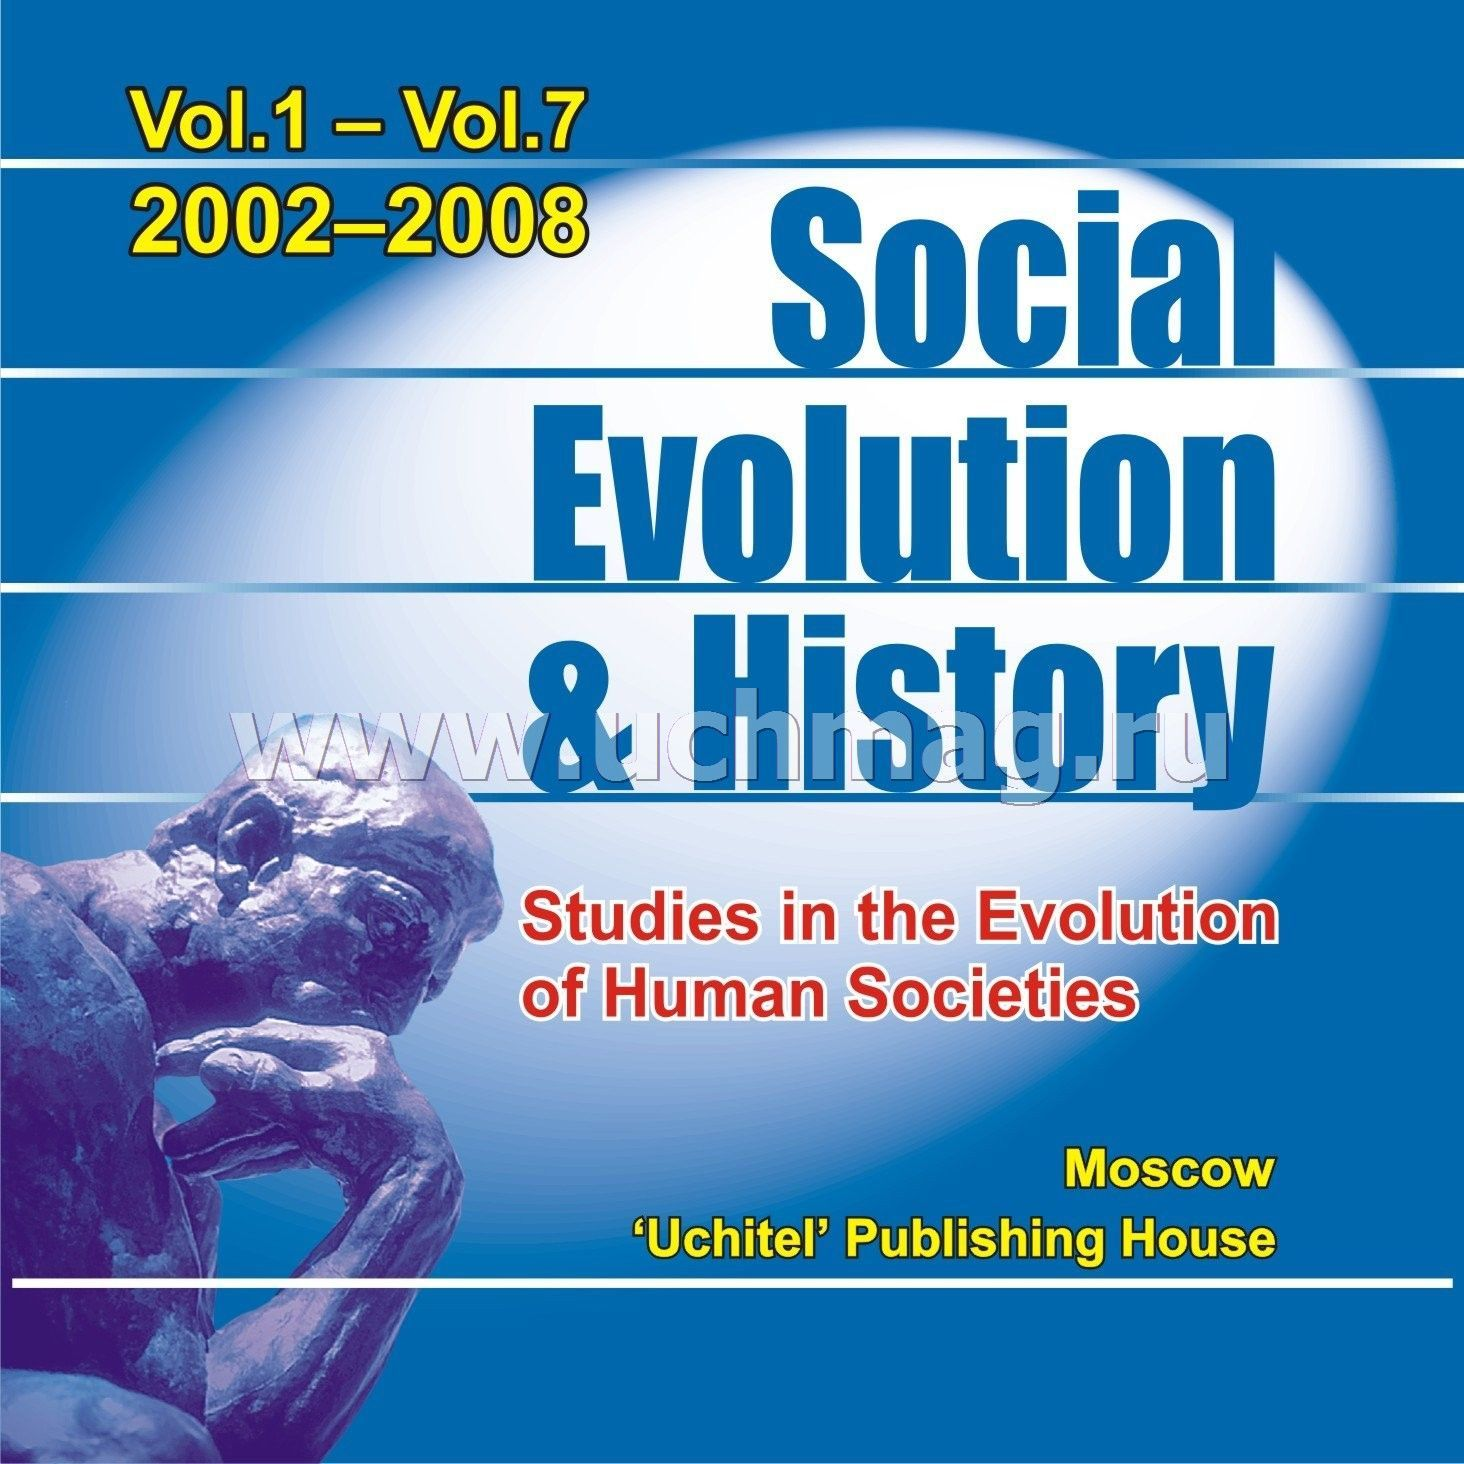 a study of evolution Further to this, scientists who study evolution in the fossil record are known as evolutionary palaeobiologists or simply palaeobiologists an evolutionist it is not an evolutionist an evolutionist is merely anyone who believes in evolution.